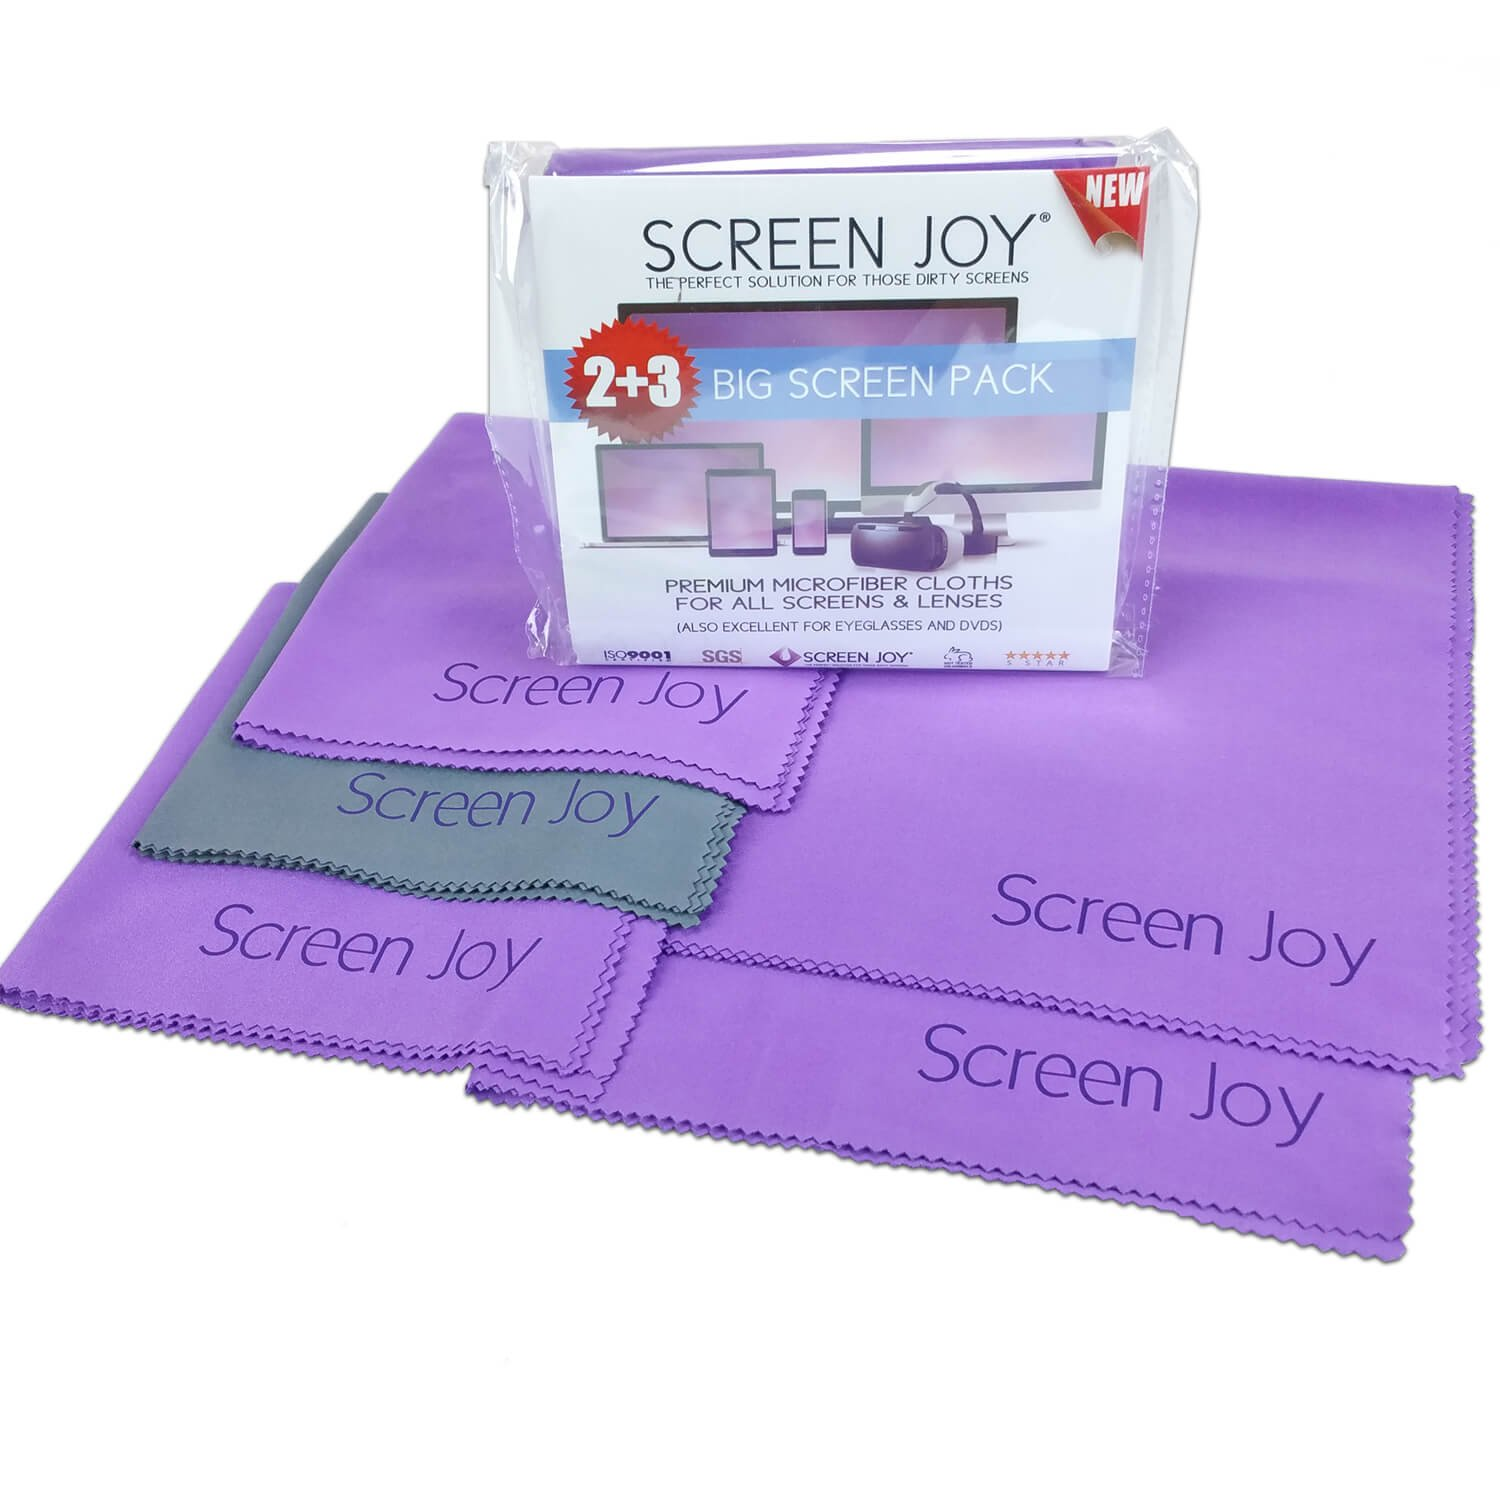 Screen Joy Screen Cleaning Cloths - 3 Large Microfiber Cloths Wonderful for Lenses, Eyeglasses, Flat Screen TVs, Laptops, Tablets, ALL Smartphones and Much More - 3 Pack Large (12x12 inch) IX Better Home SJ-MF12-3Pk